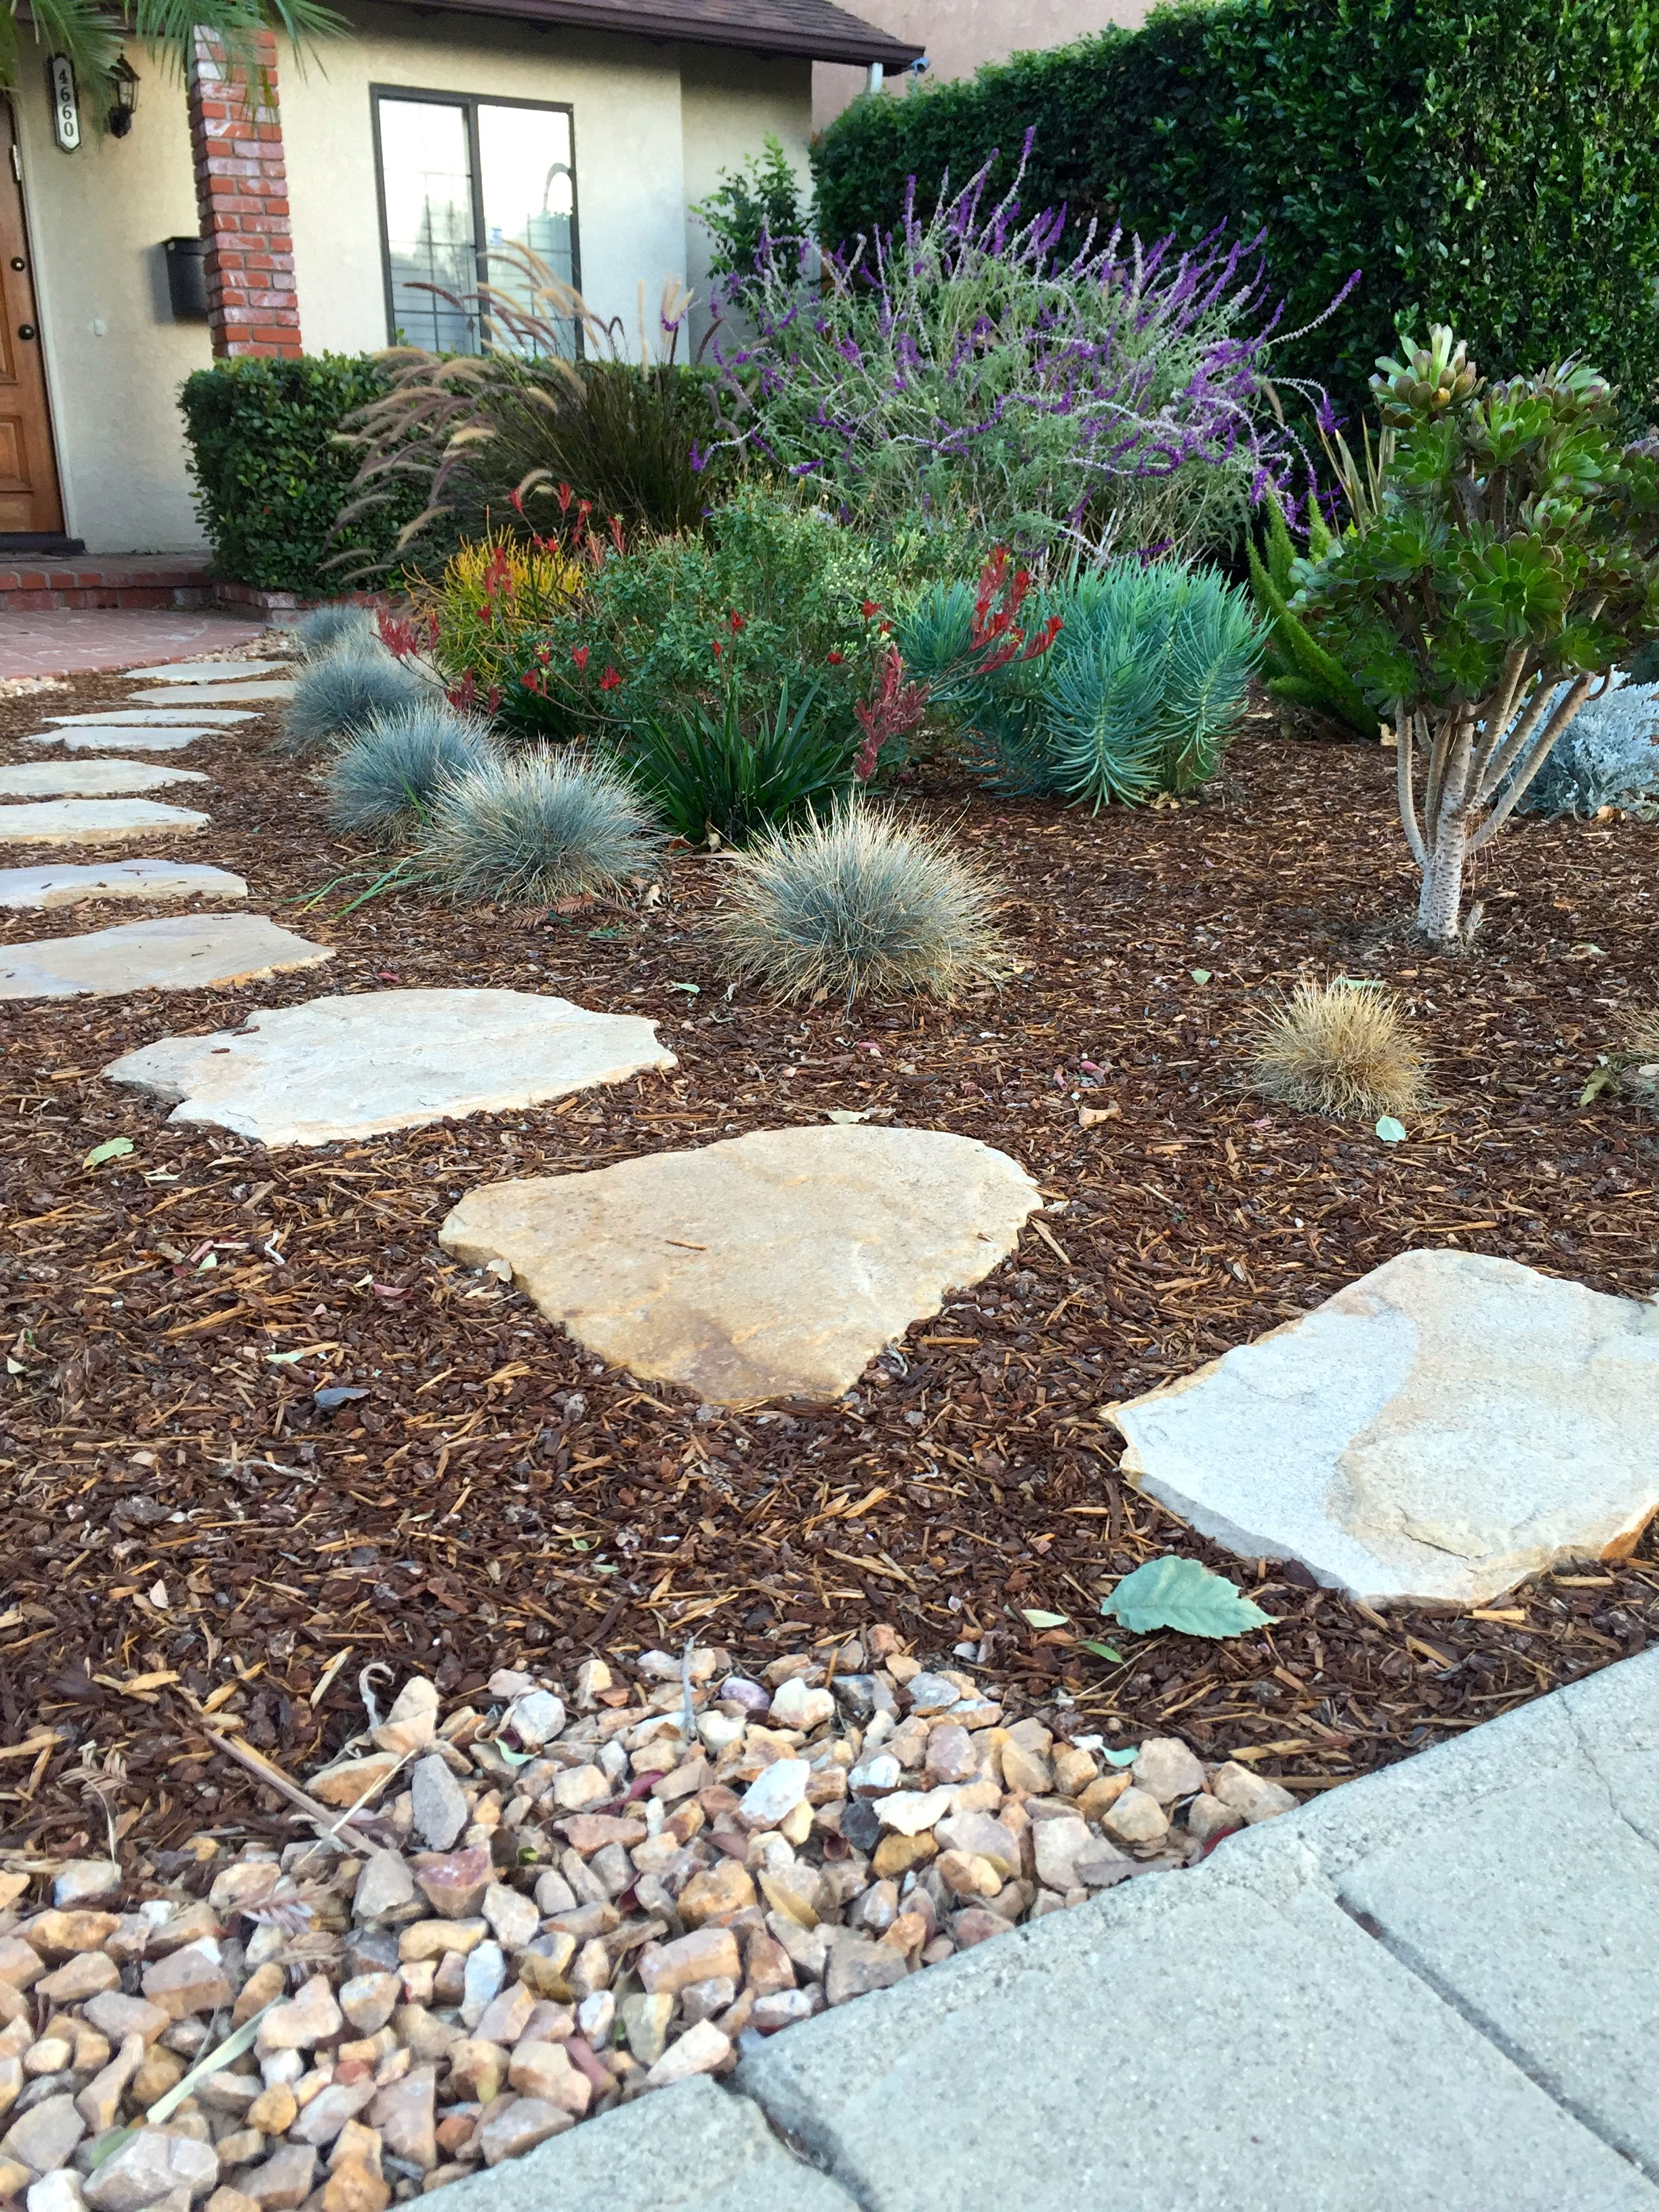 Paving Stone Pathway Surrounded By Mulch Bark And Colorful Low Water Plants In This Drought Resistant Landscaping